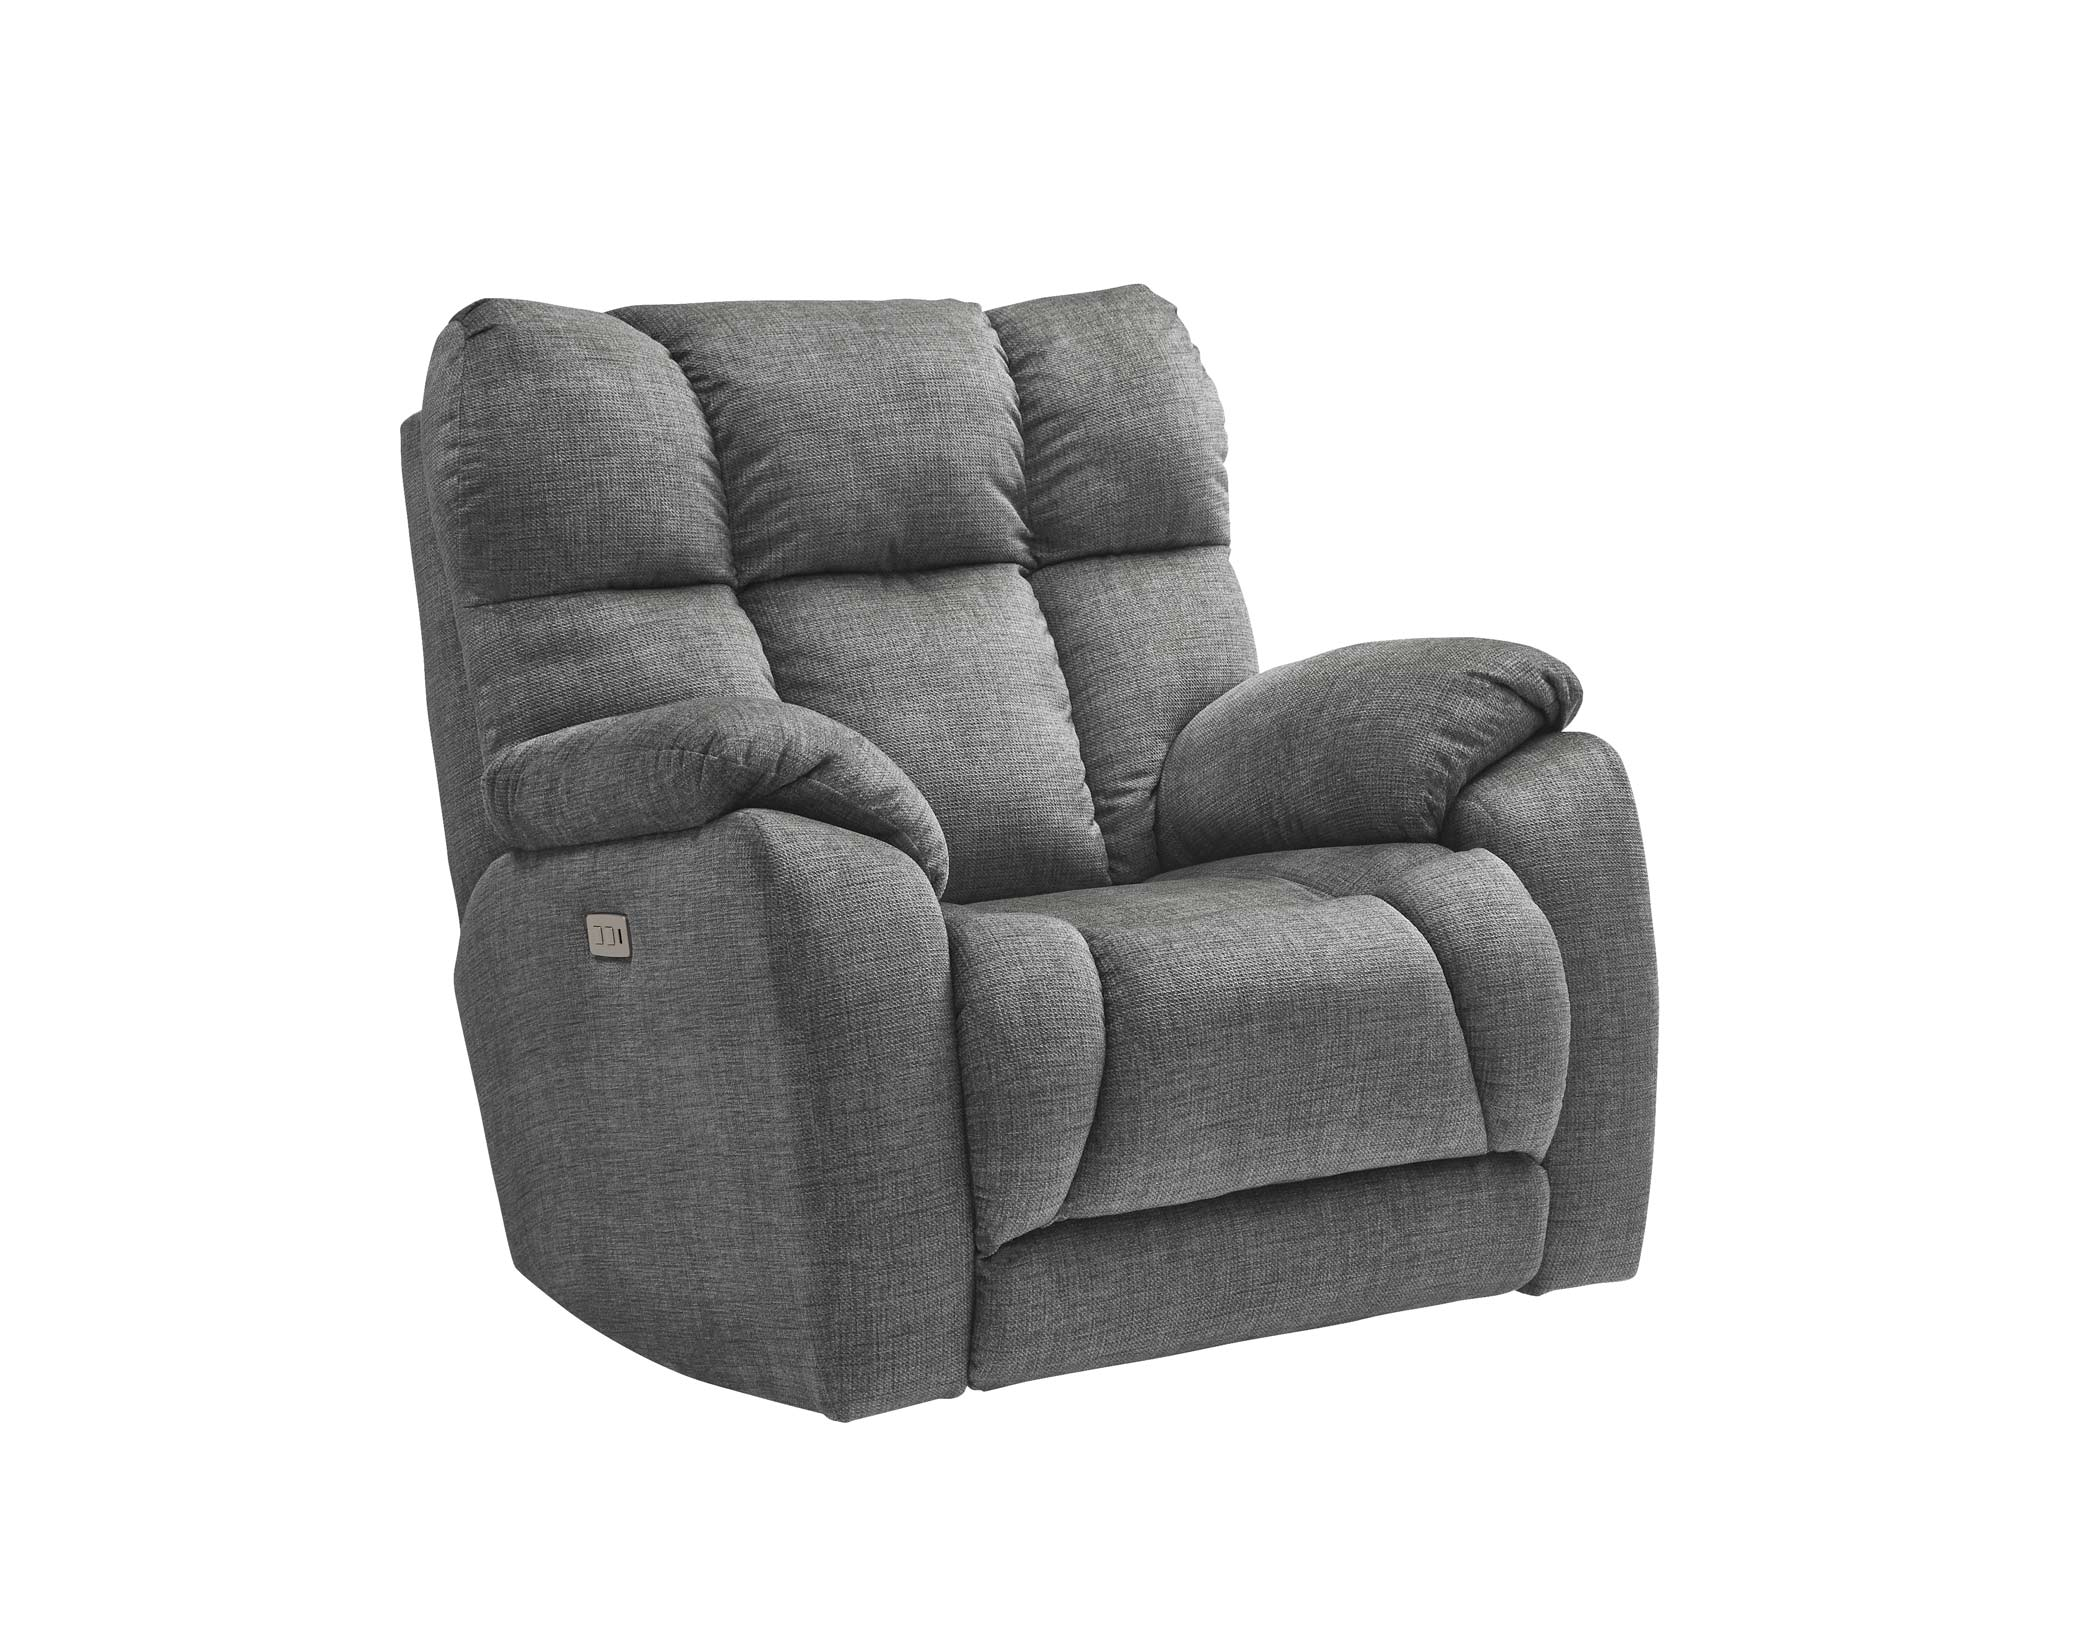 1787-5787P-WILD-CARD-IN-214-14-BRADY-CHARCOAL-RECLINER-SWP-THS_web